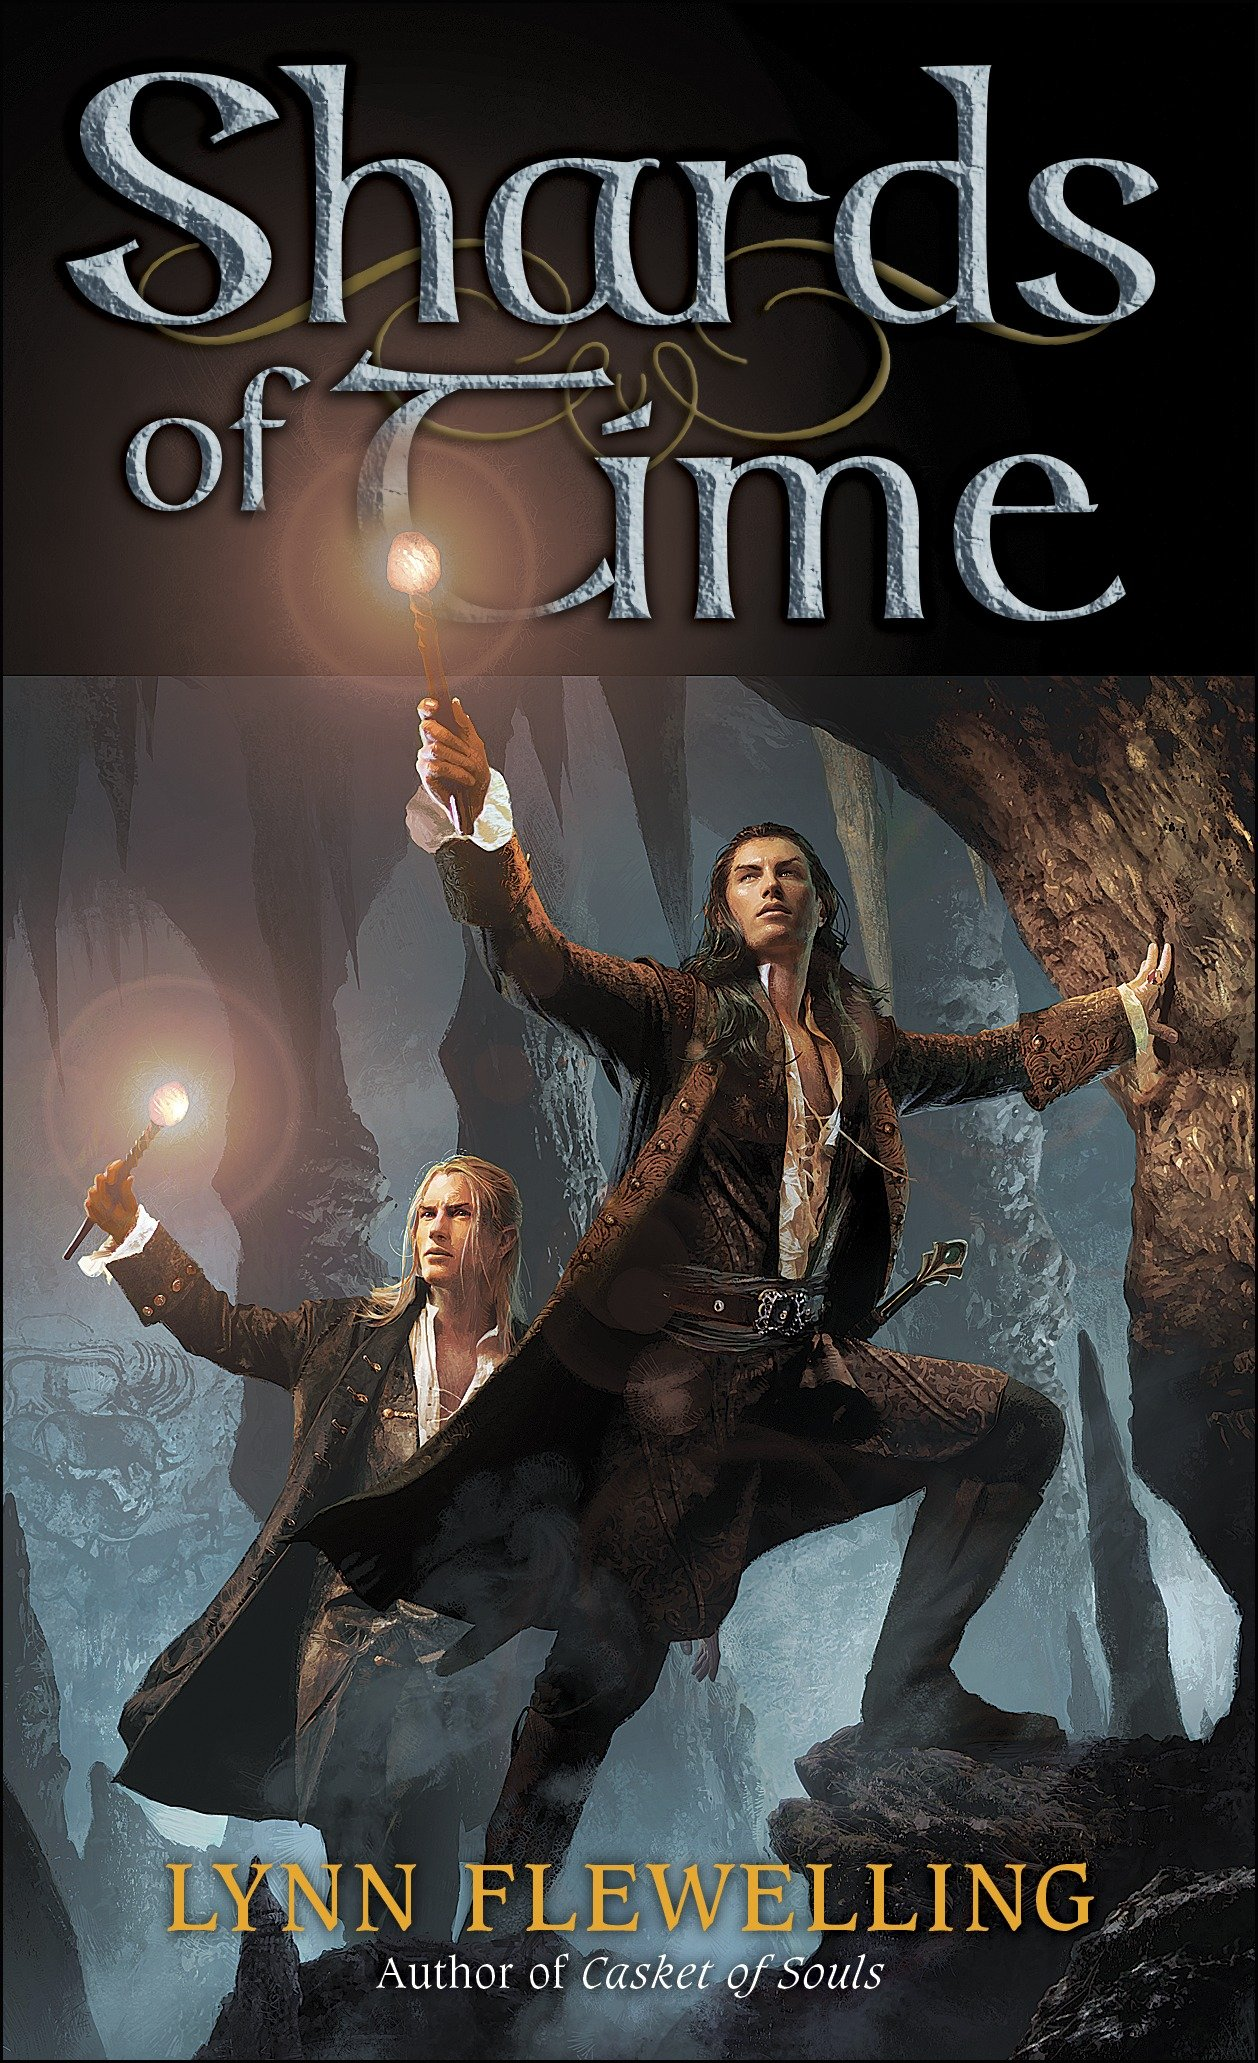 Shards of time cover image